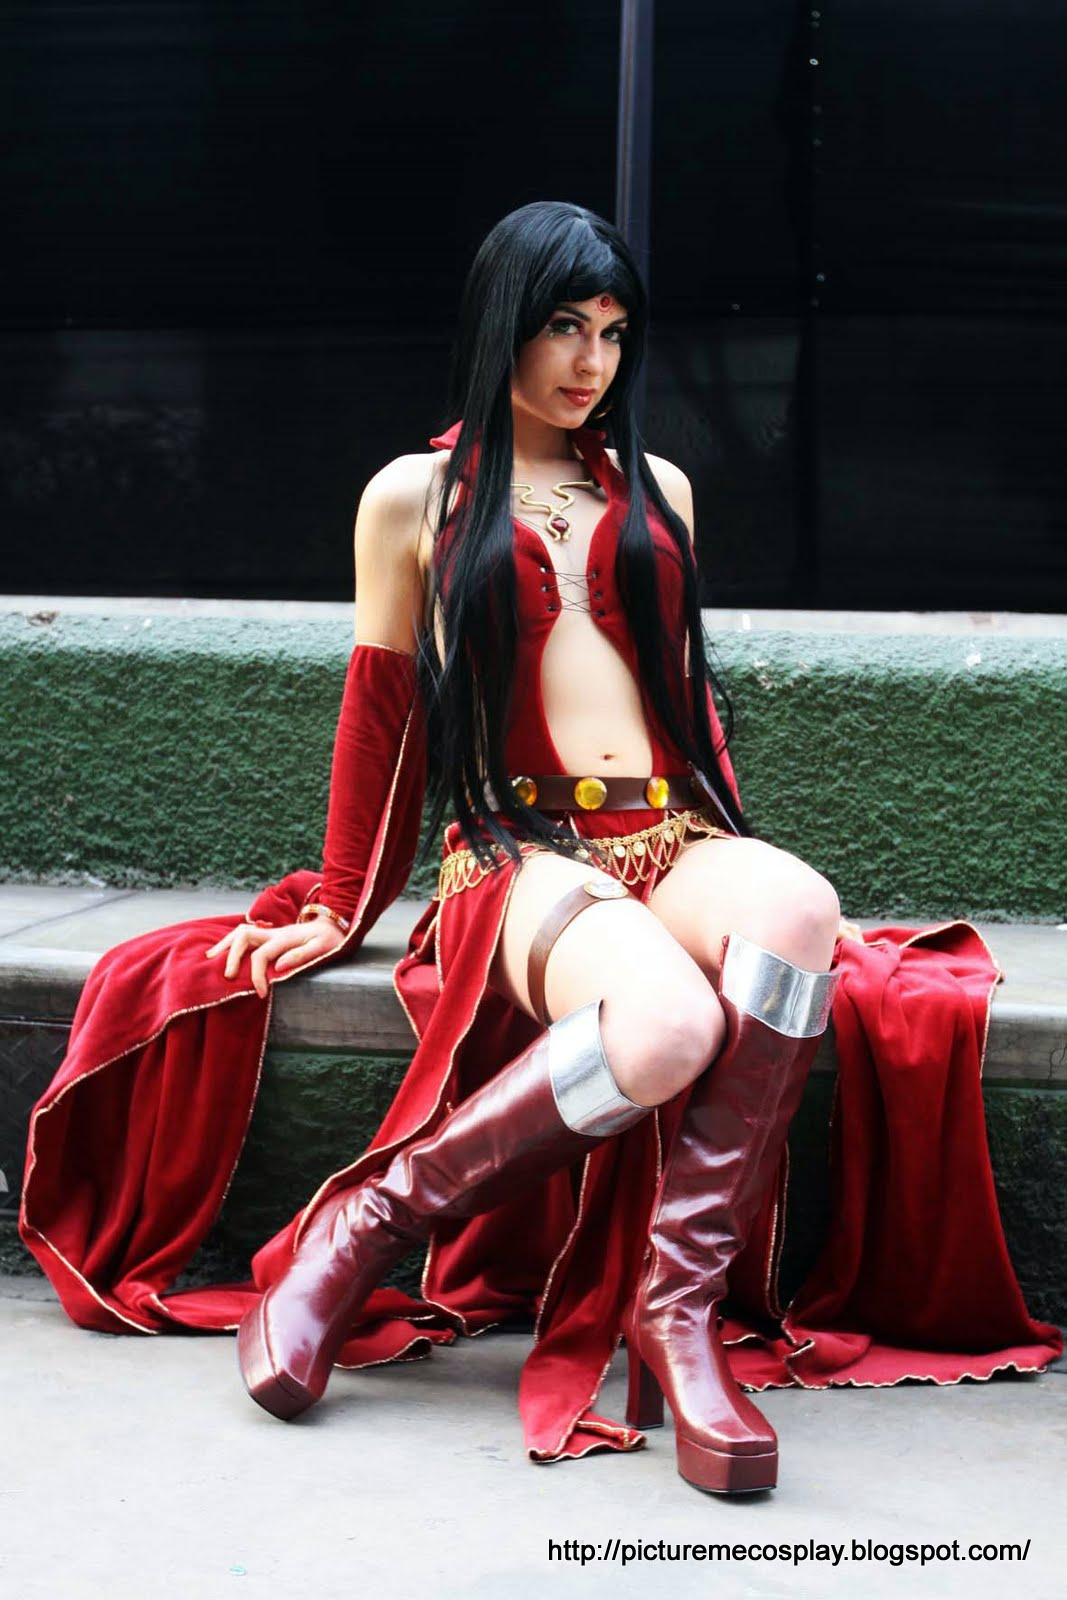 Prince of persia cosplay porn pron gallery